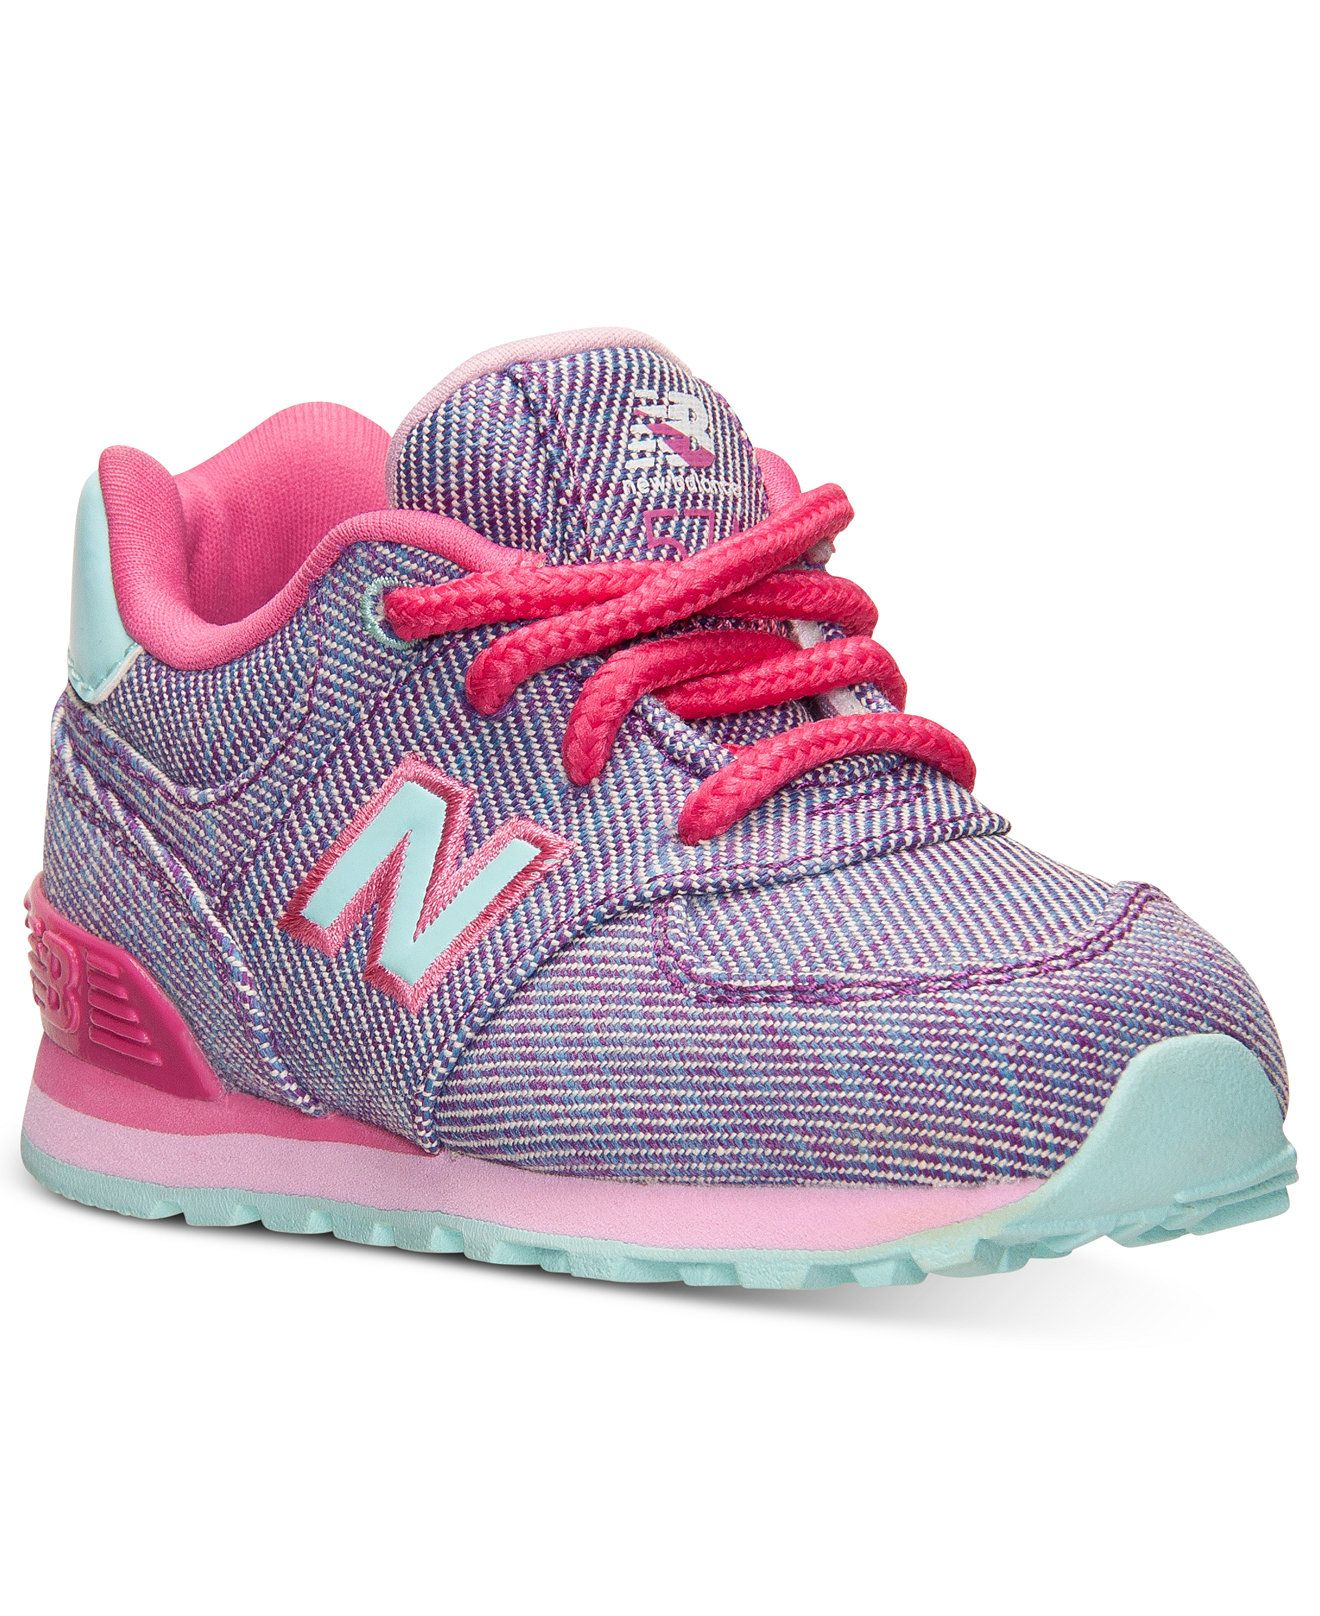 New Balance Toddler Girls' 574 Casual Sneakers from Finish